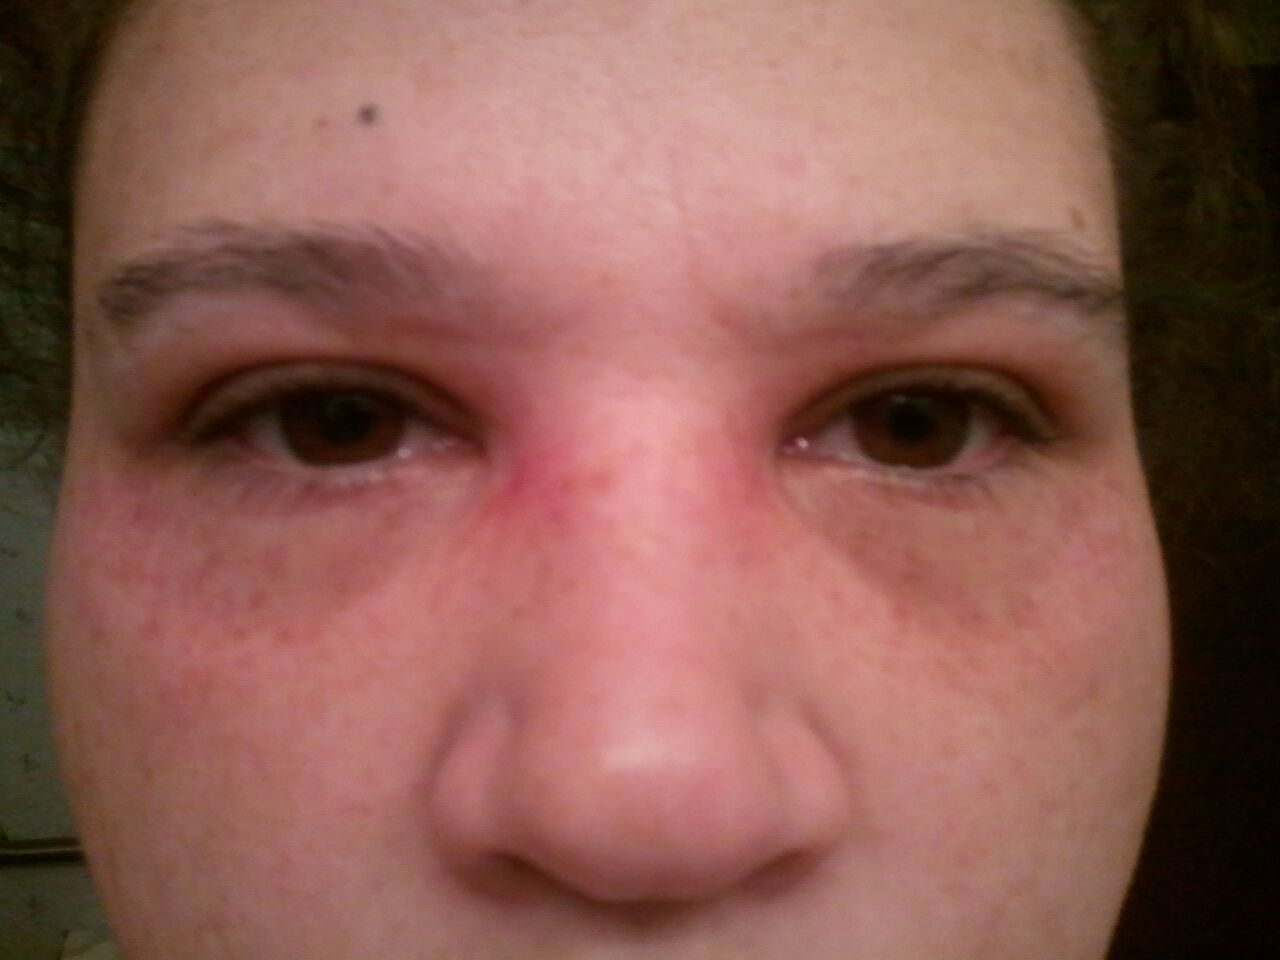 Vomiting and facial blood vessels